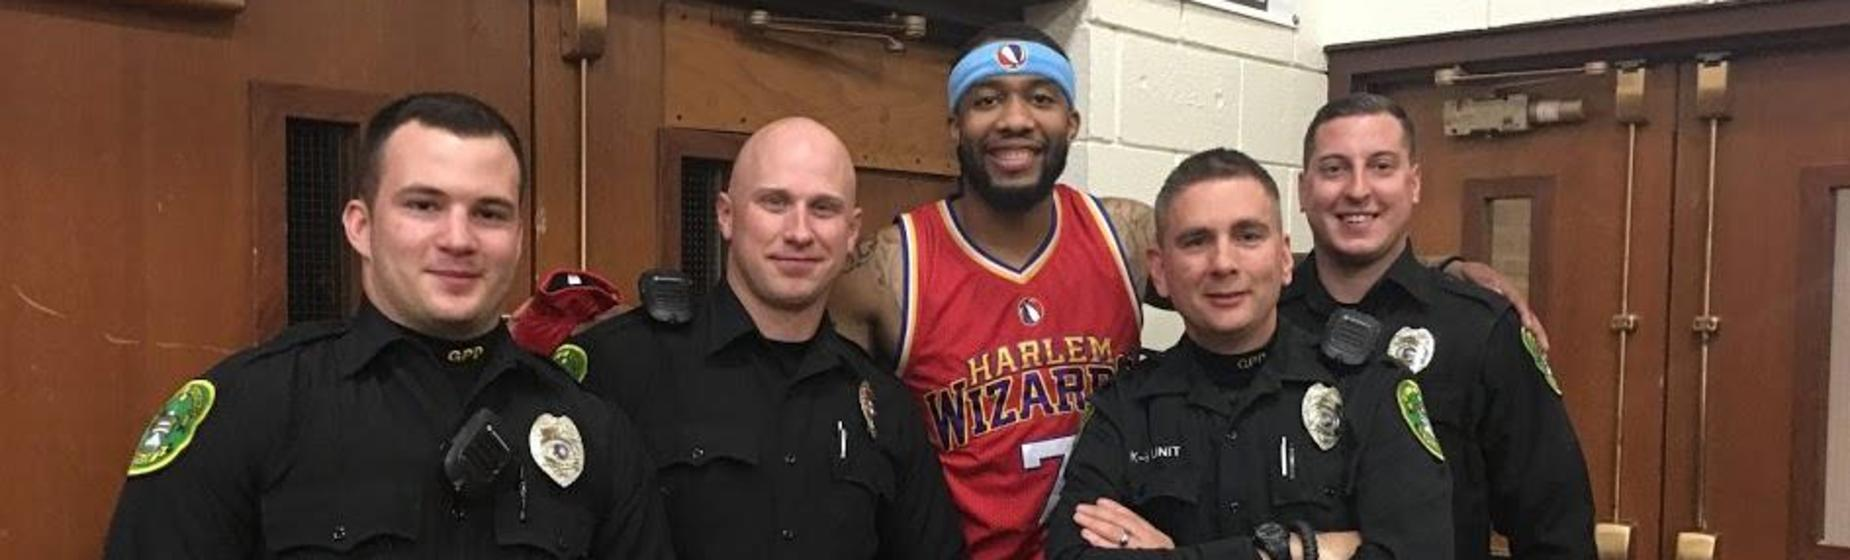 Police with Harlem Wizard